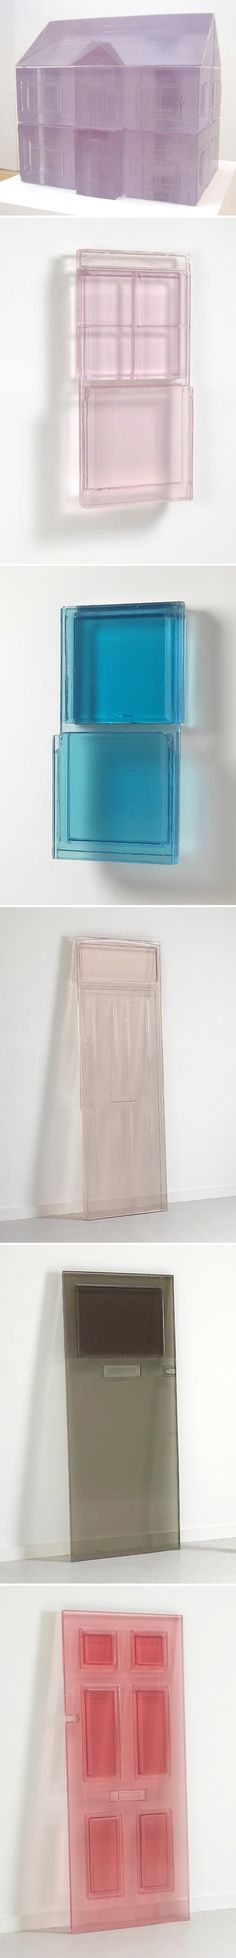 """18. Rachel Whiteread:  """"The artist Rachel Whiteread creates elegant and poetic sculptures which explore architecture, space, absence and memory."""""""